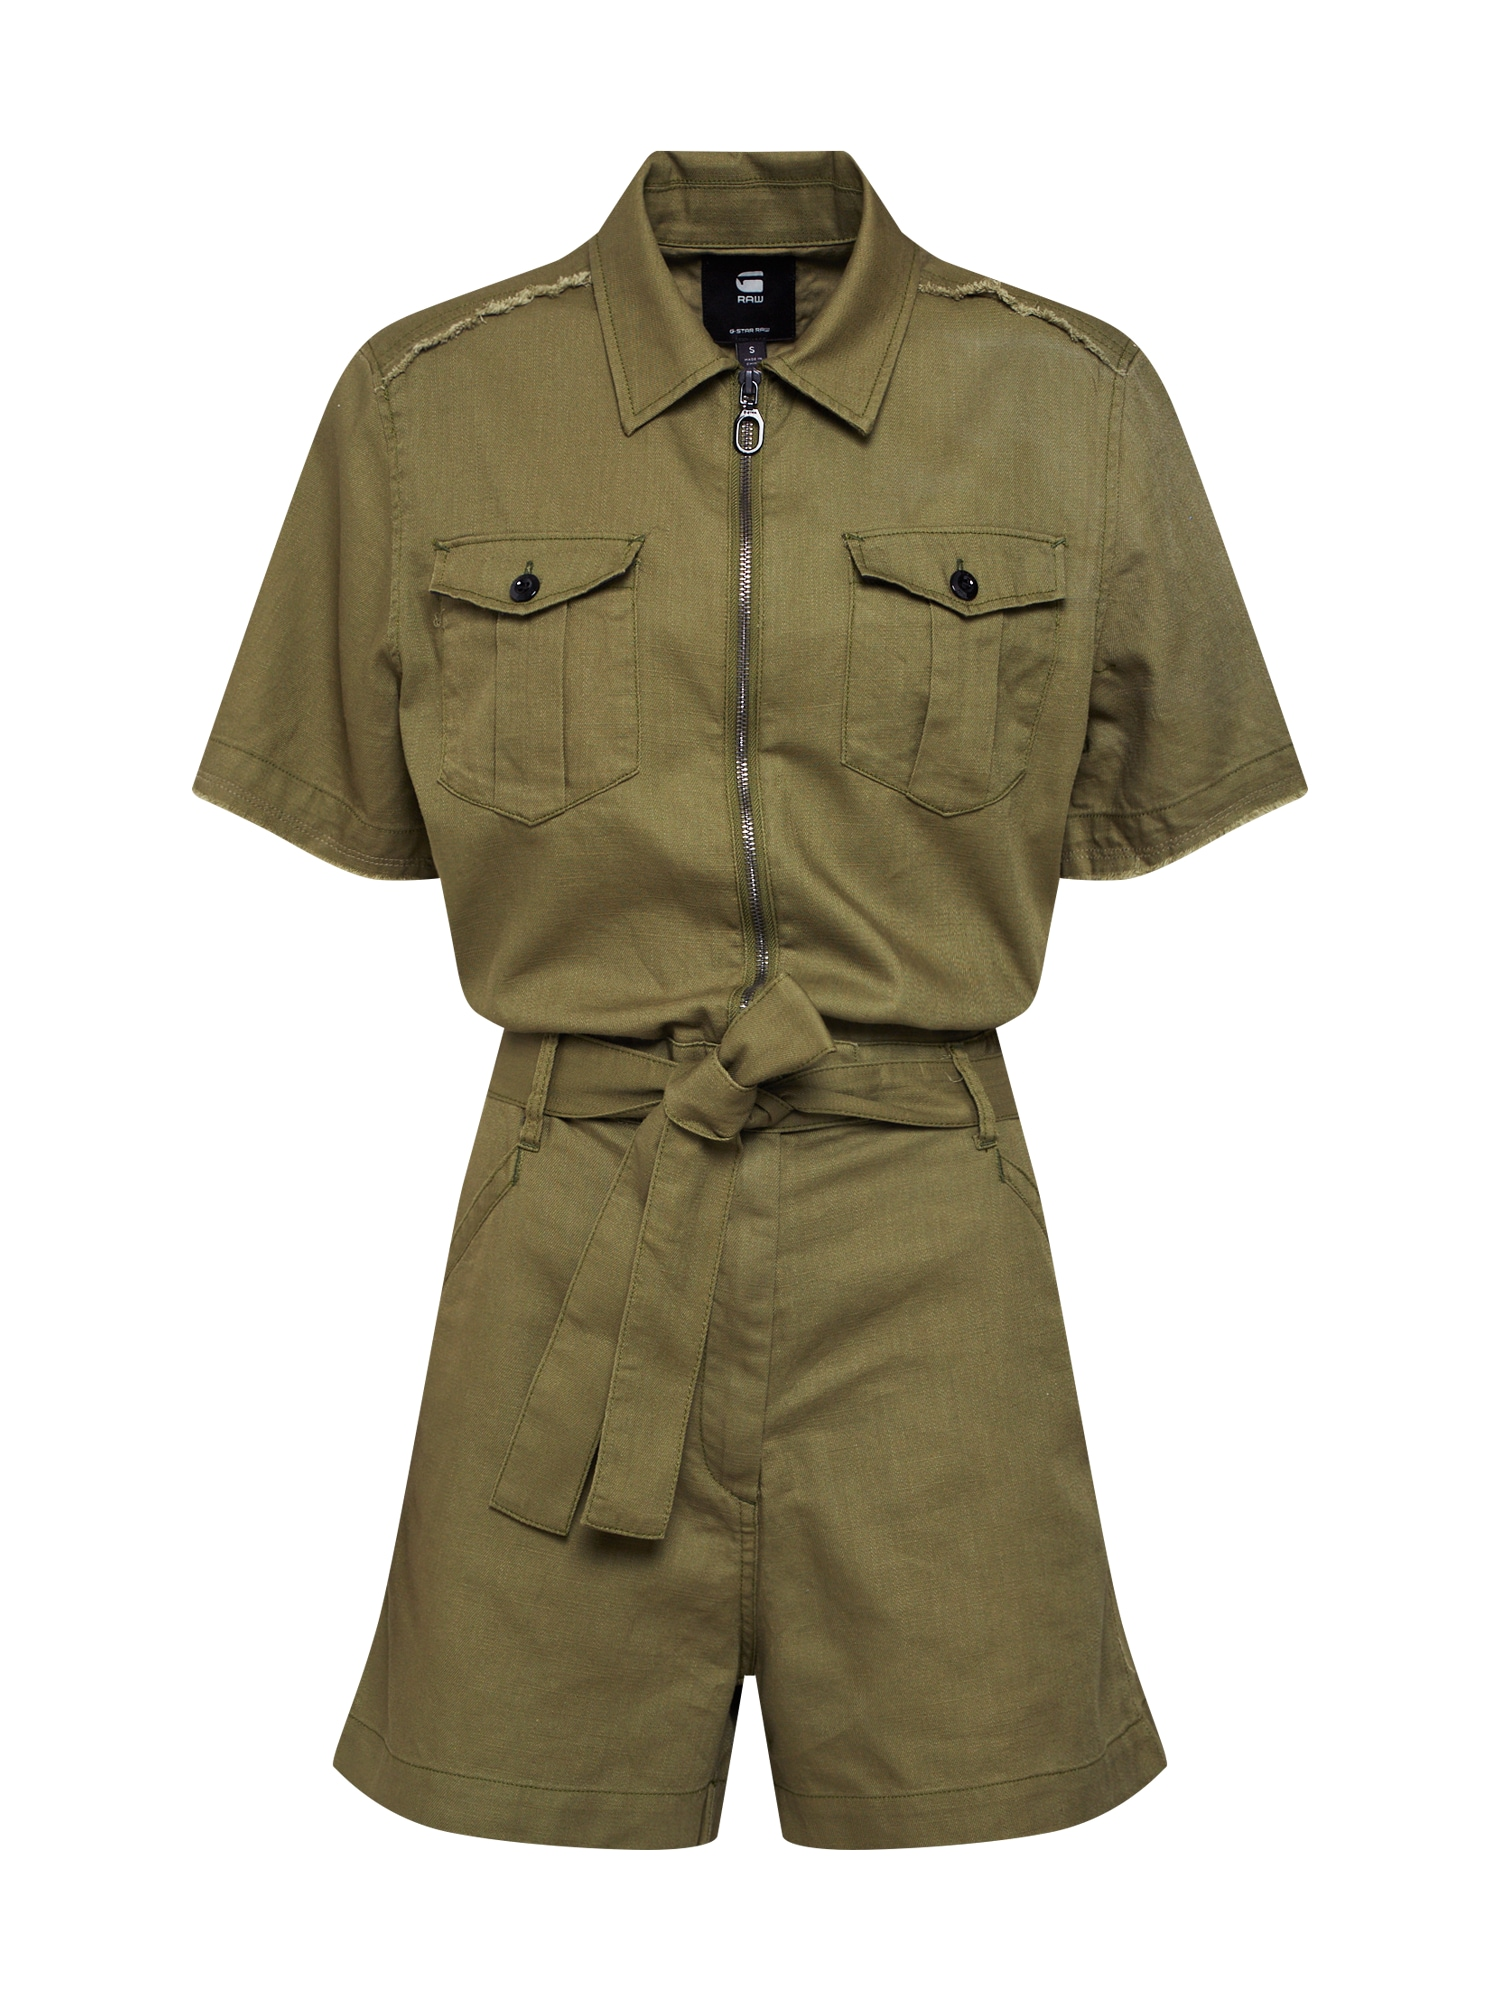 Overal Rovic khaki G-STAR RAW